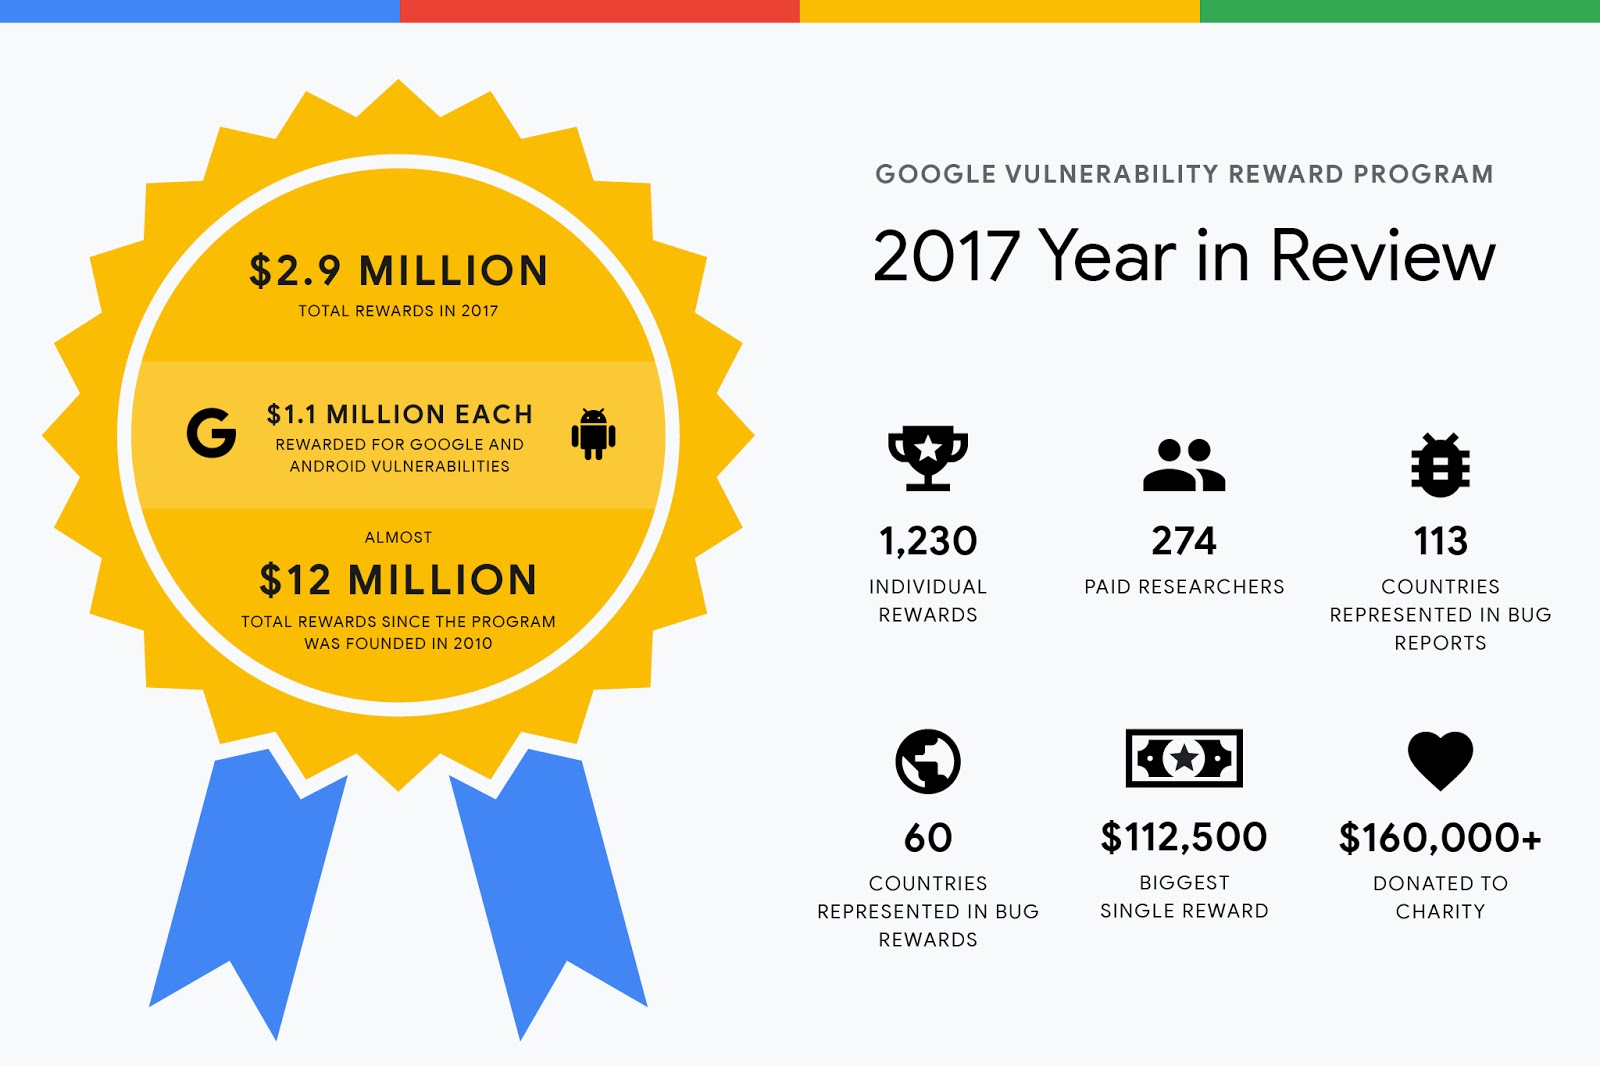 Google Online Security Blog: Vulnerability Reward Program: 2017 Year